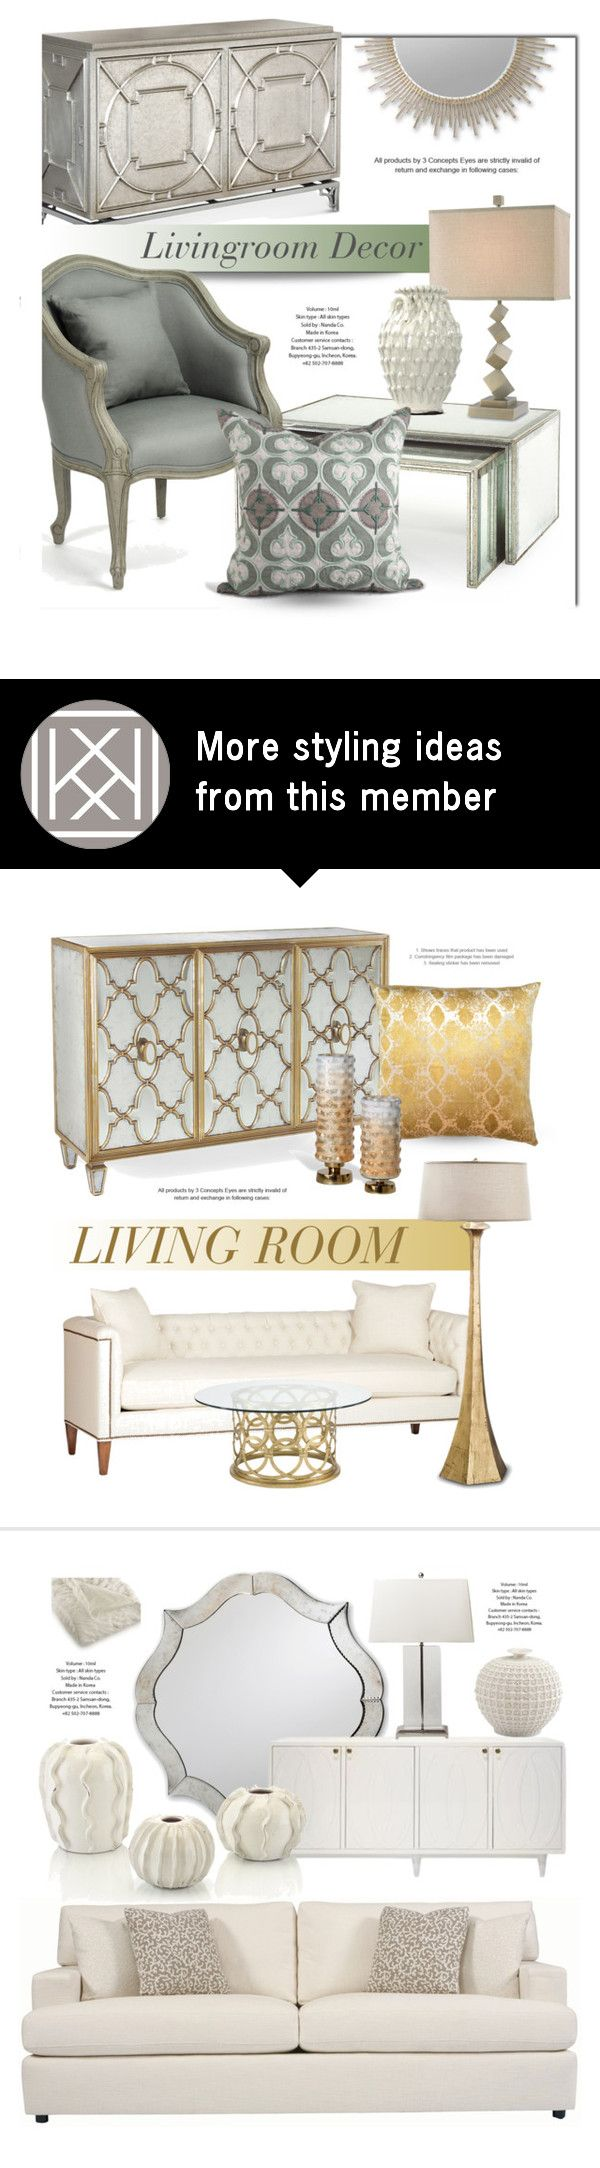 Home decor collage from january 2017 featuring currey company - Polyvore For Design Livingroom Decor By Kathykuohome On Polyvore Featuring Interior Interiors Interior Design Home Home Decor Interior Decorating